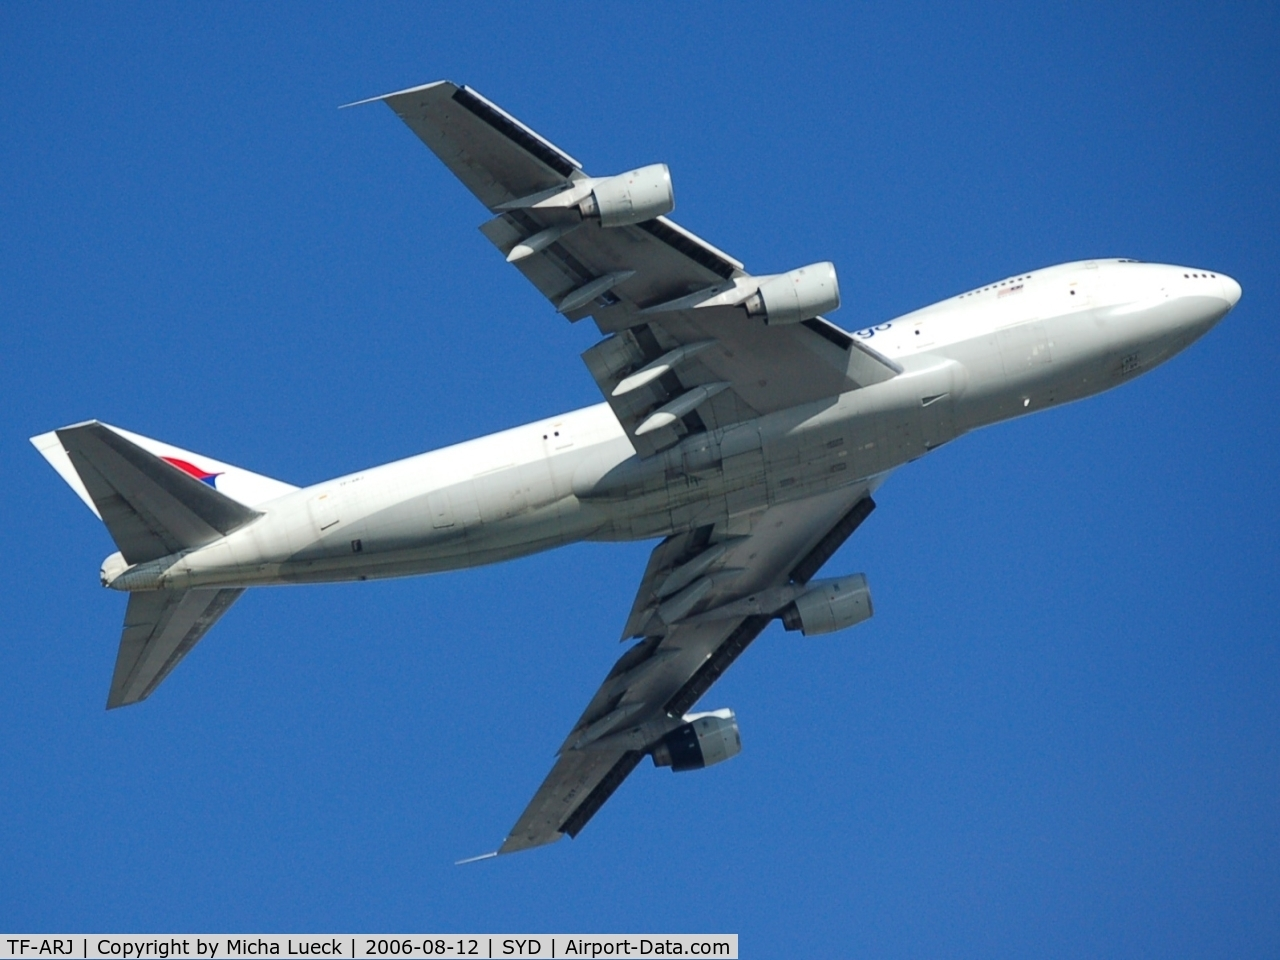 TF-ARJ, 1987 Boeing 747-236B C/N 23735, Climbing out of Sydney